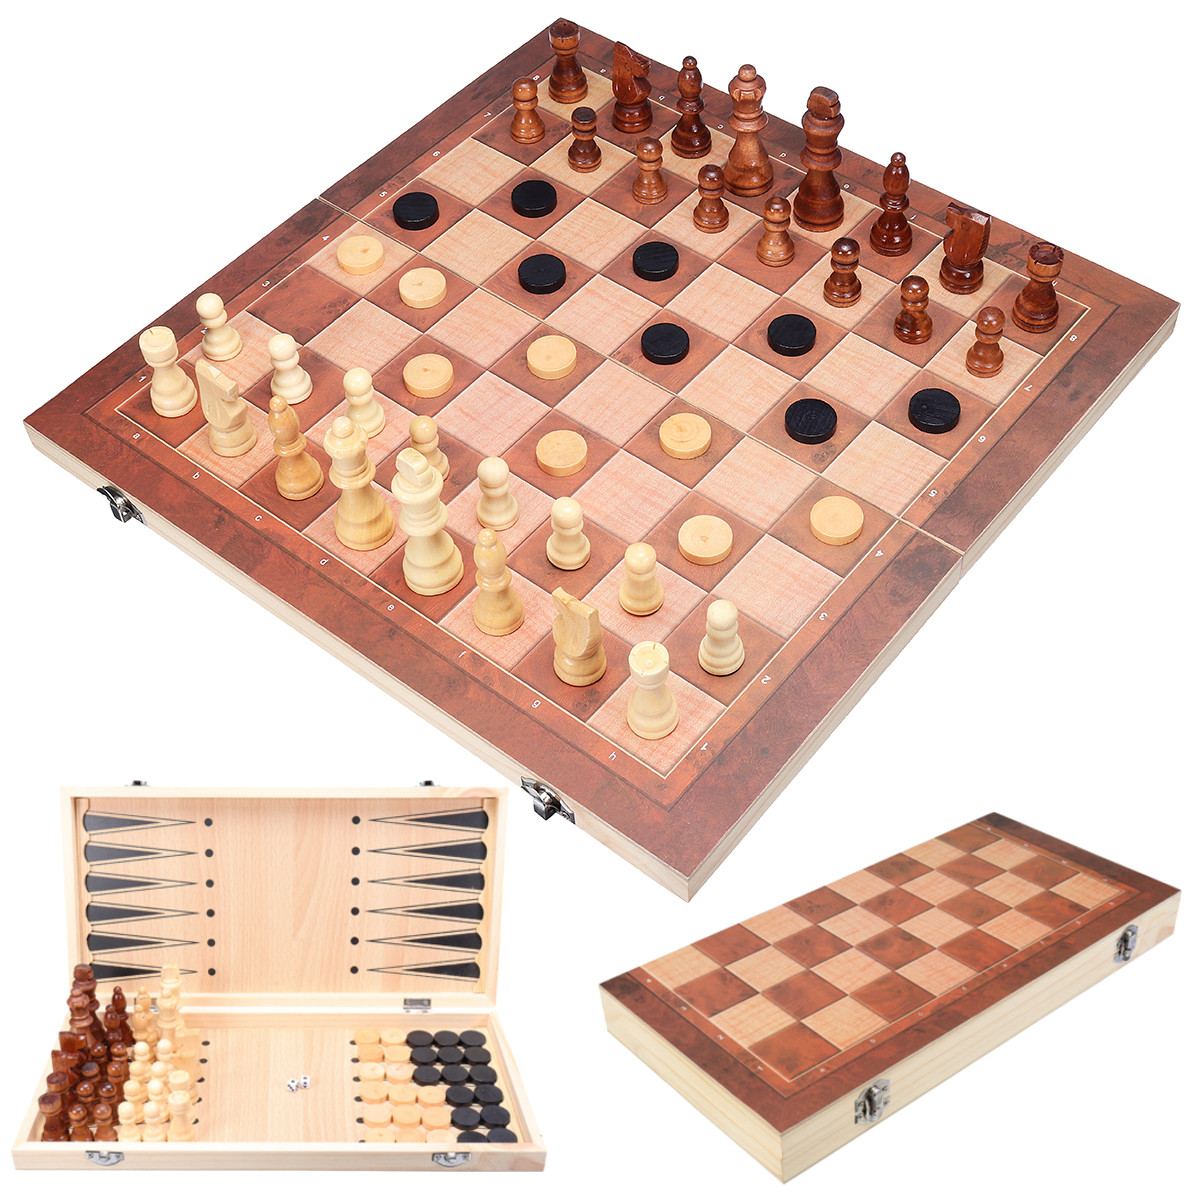 3 in1 Folding Wooden Chess Set Board Game Checkers Backgammon Draughts Xmas Gift On Sale by